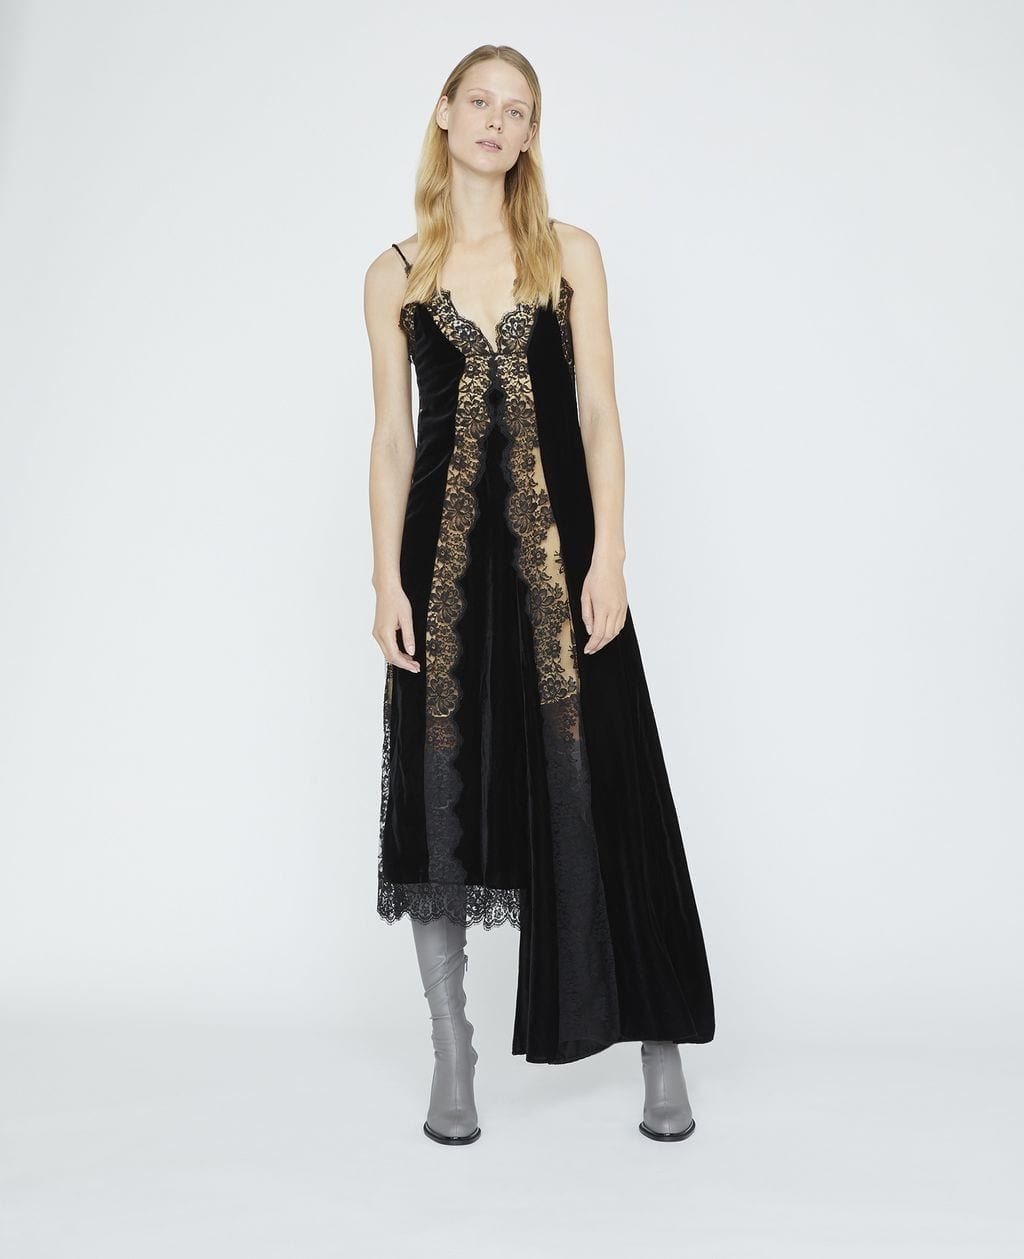 STELLA MCCARTNEY Andie Velvet Black Dress